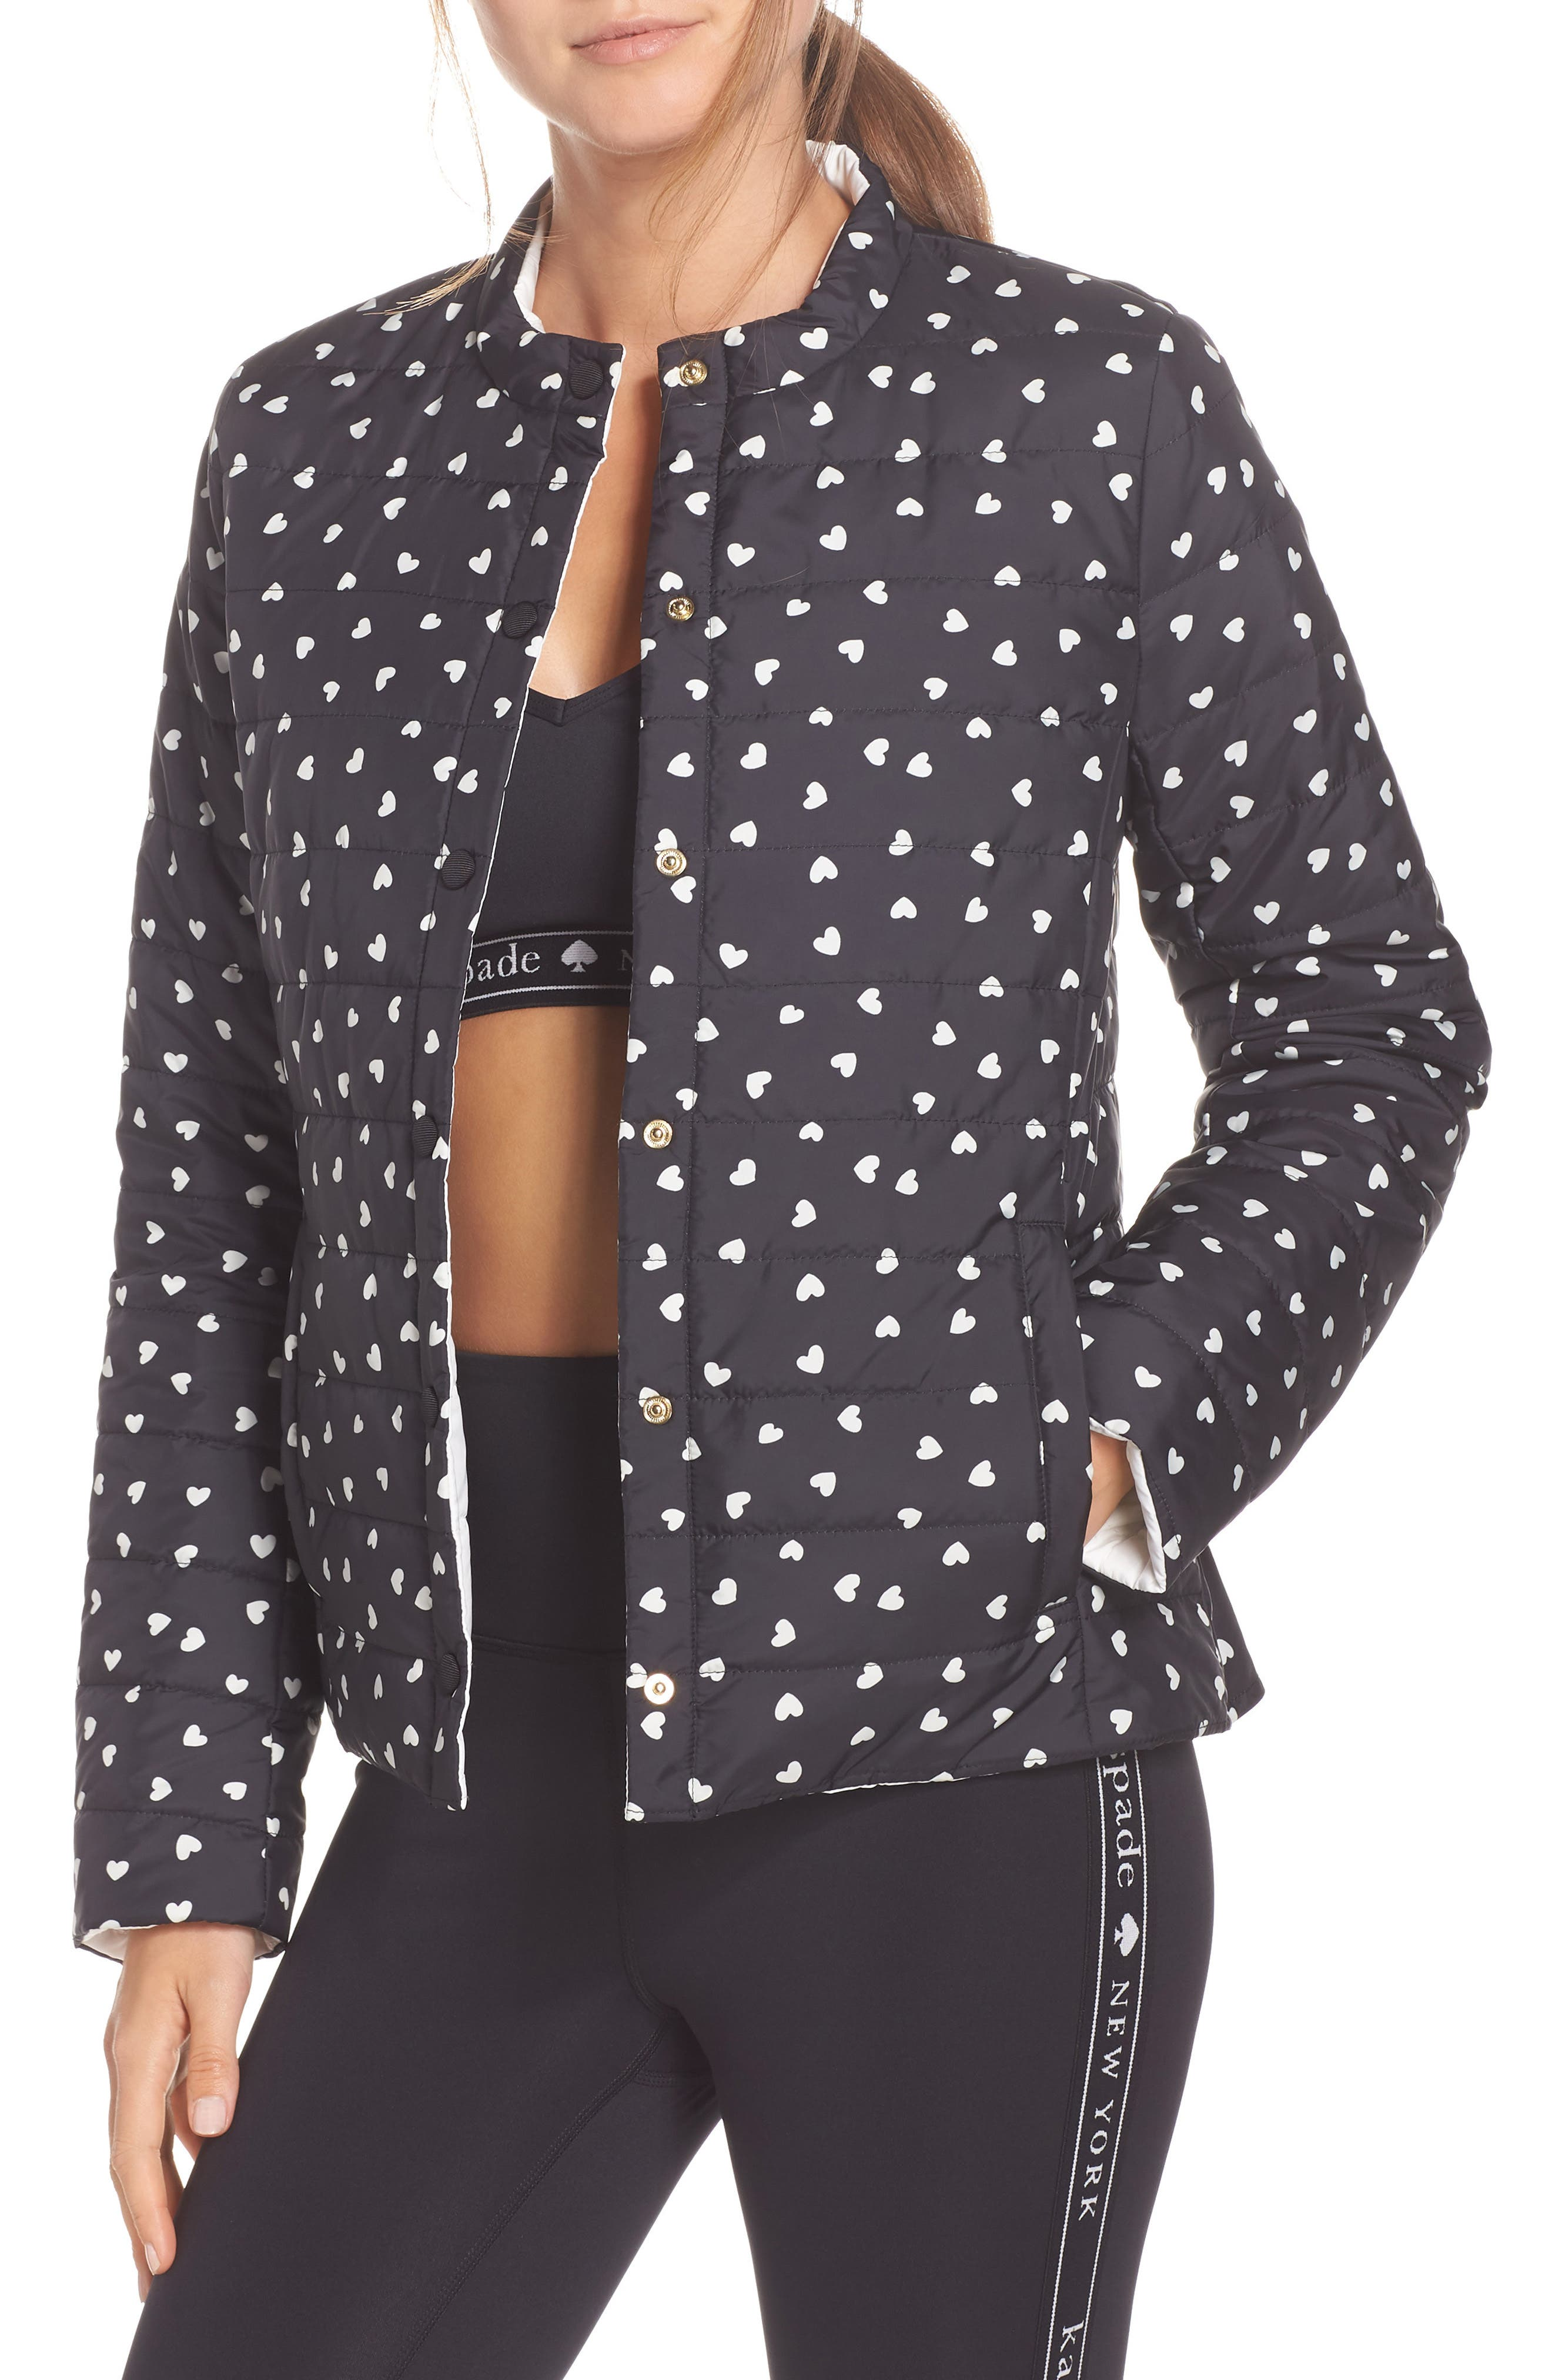 KATE SPADE NEW YORK,                             ruffle reversible quilted jacket,                             Main thumbnail 1, color,                             001